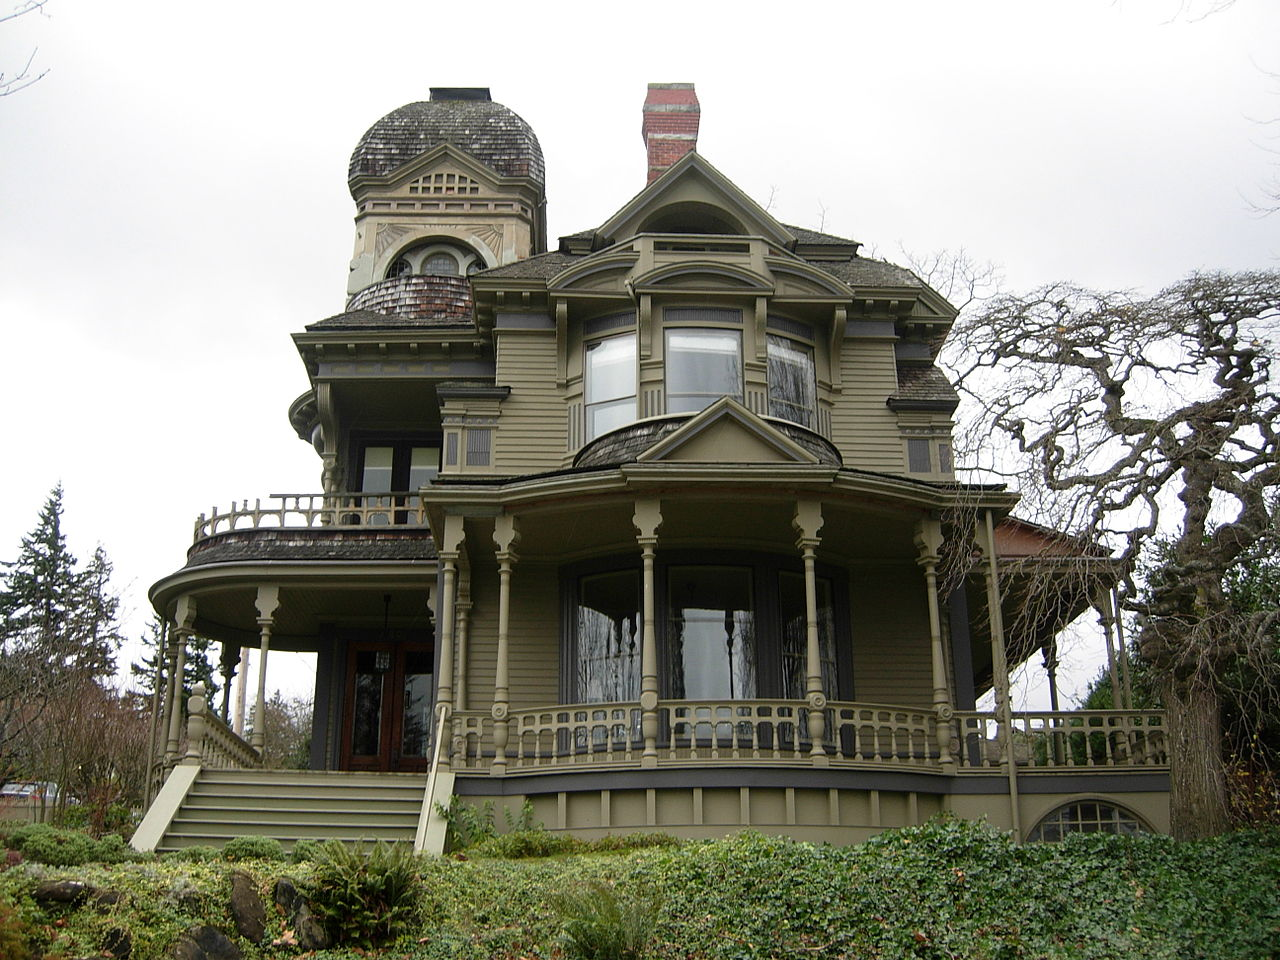 Built in 1892, the Gamwell House is one of the most beautiful homes in Bellingham.